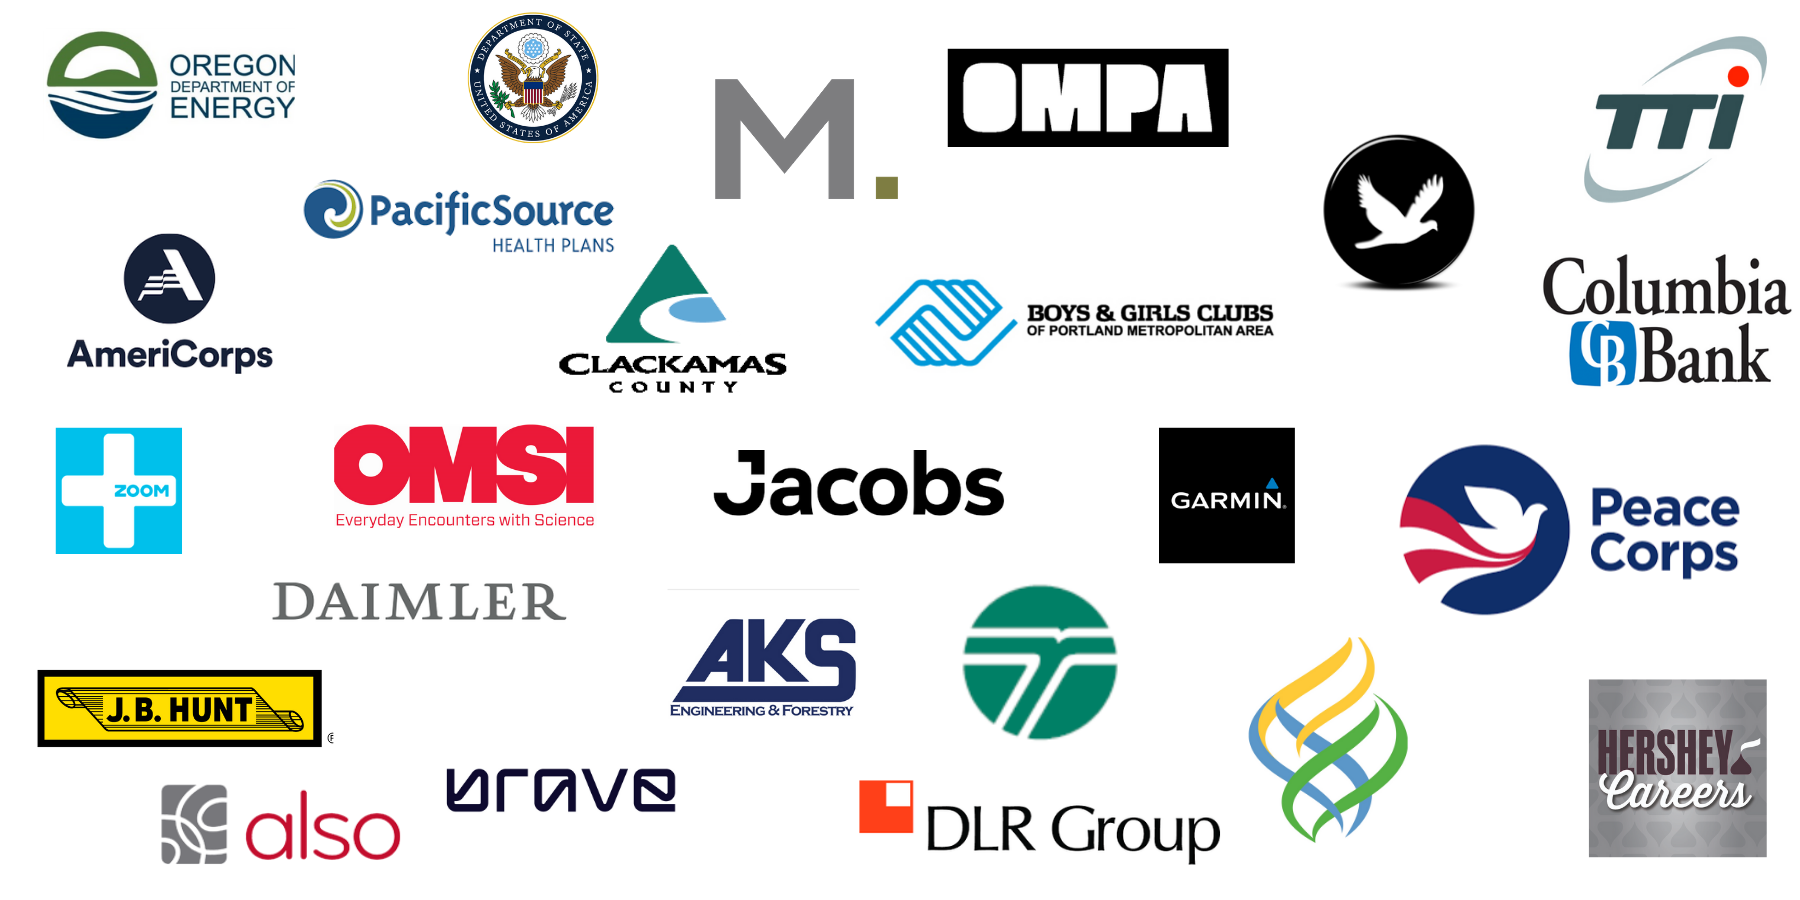 Company Logos - List of companies attending can be found on Fair Handshake pages